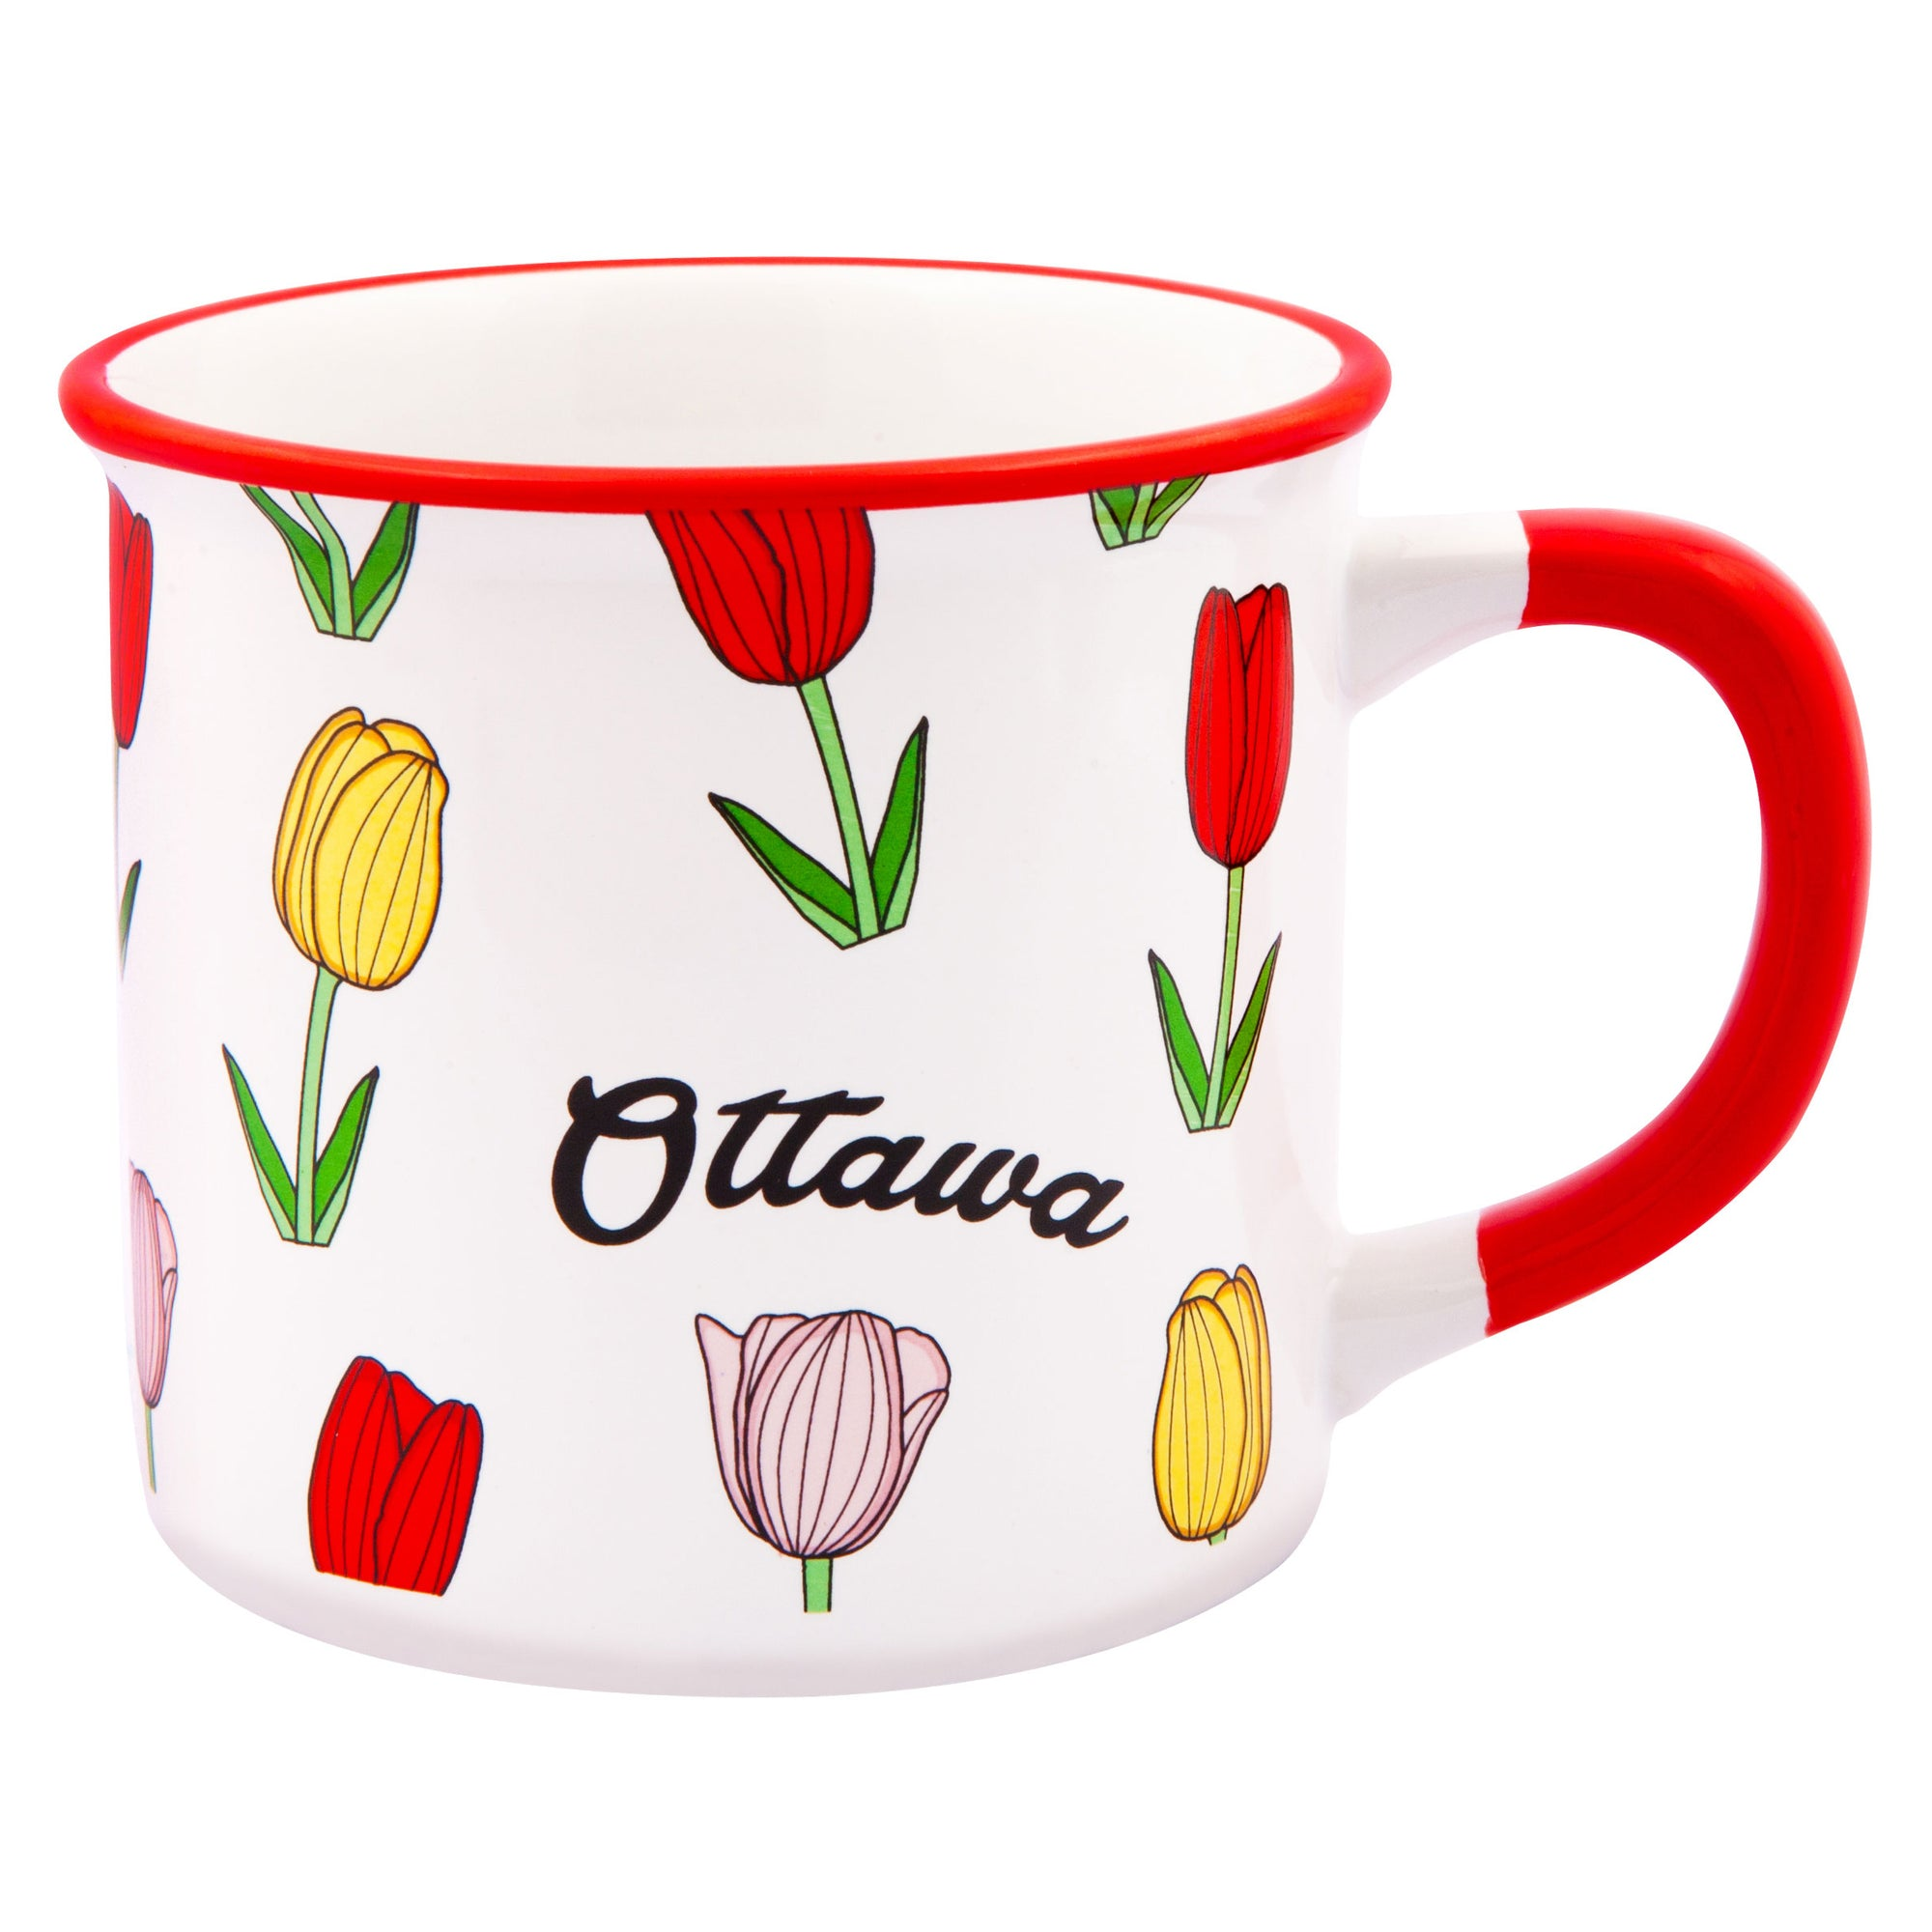 Ottawa Tulips Mug - Main and Local